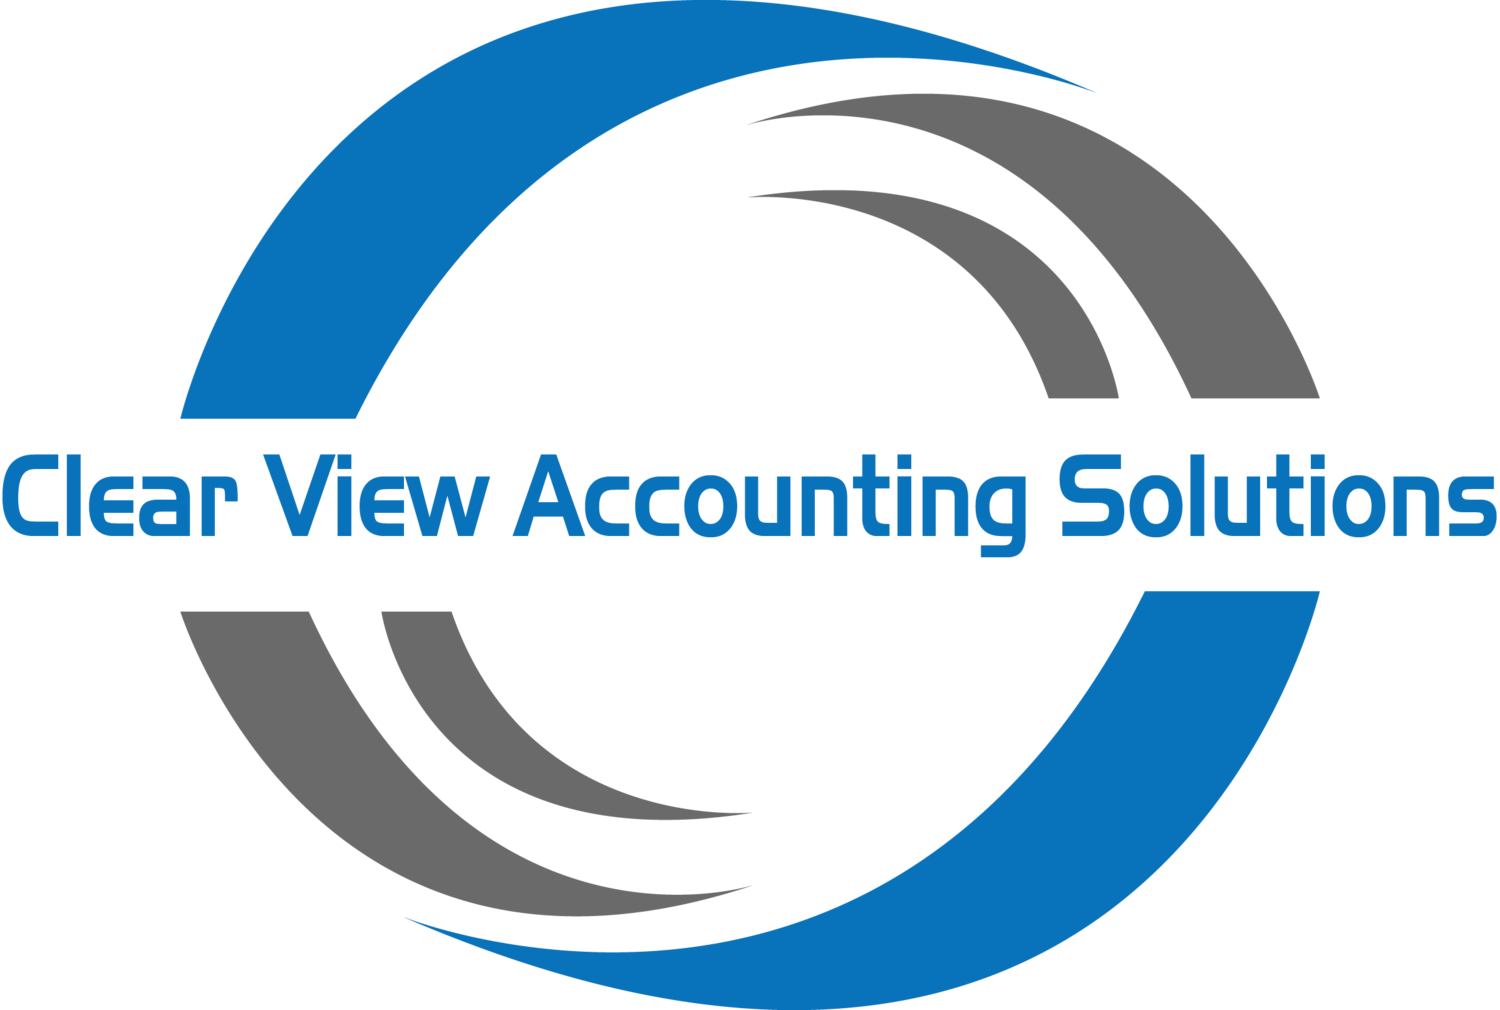 Clear View Accounting Solutions